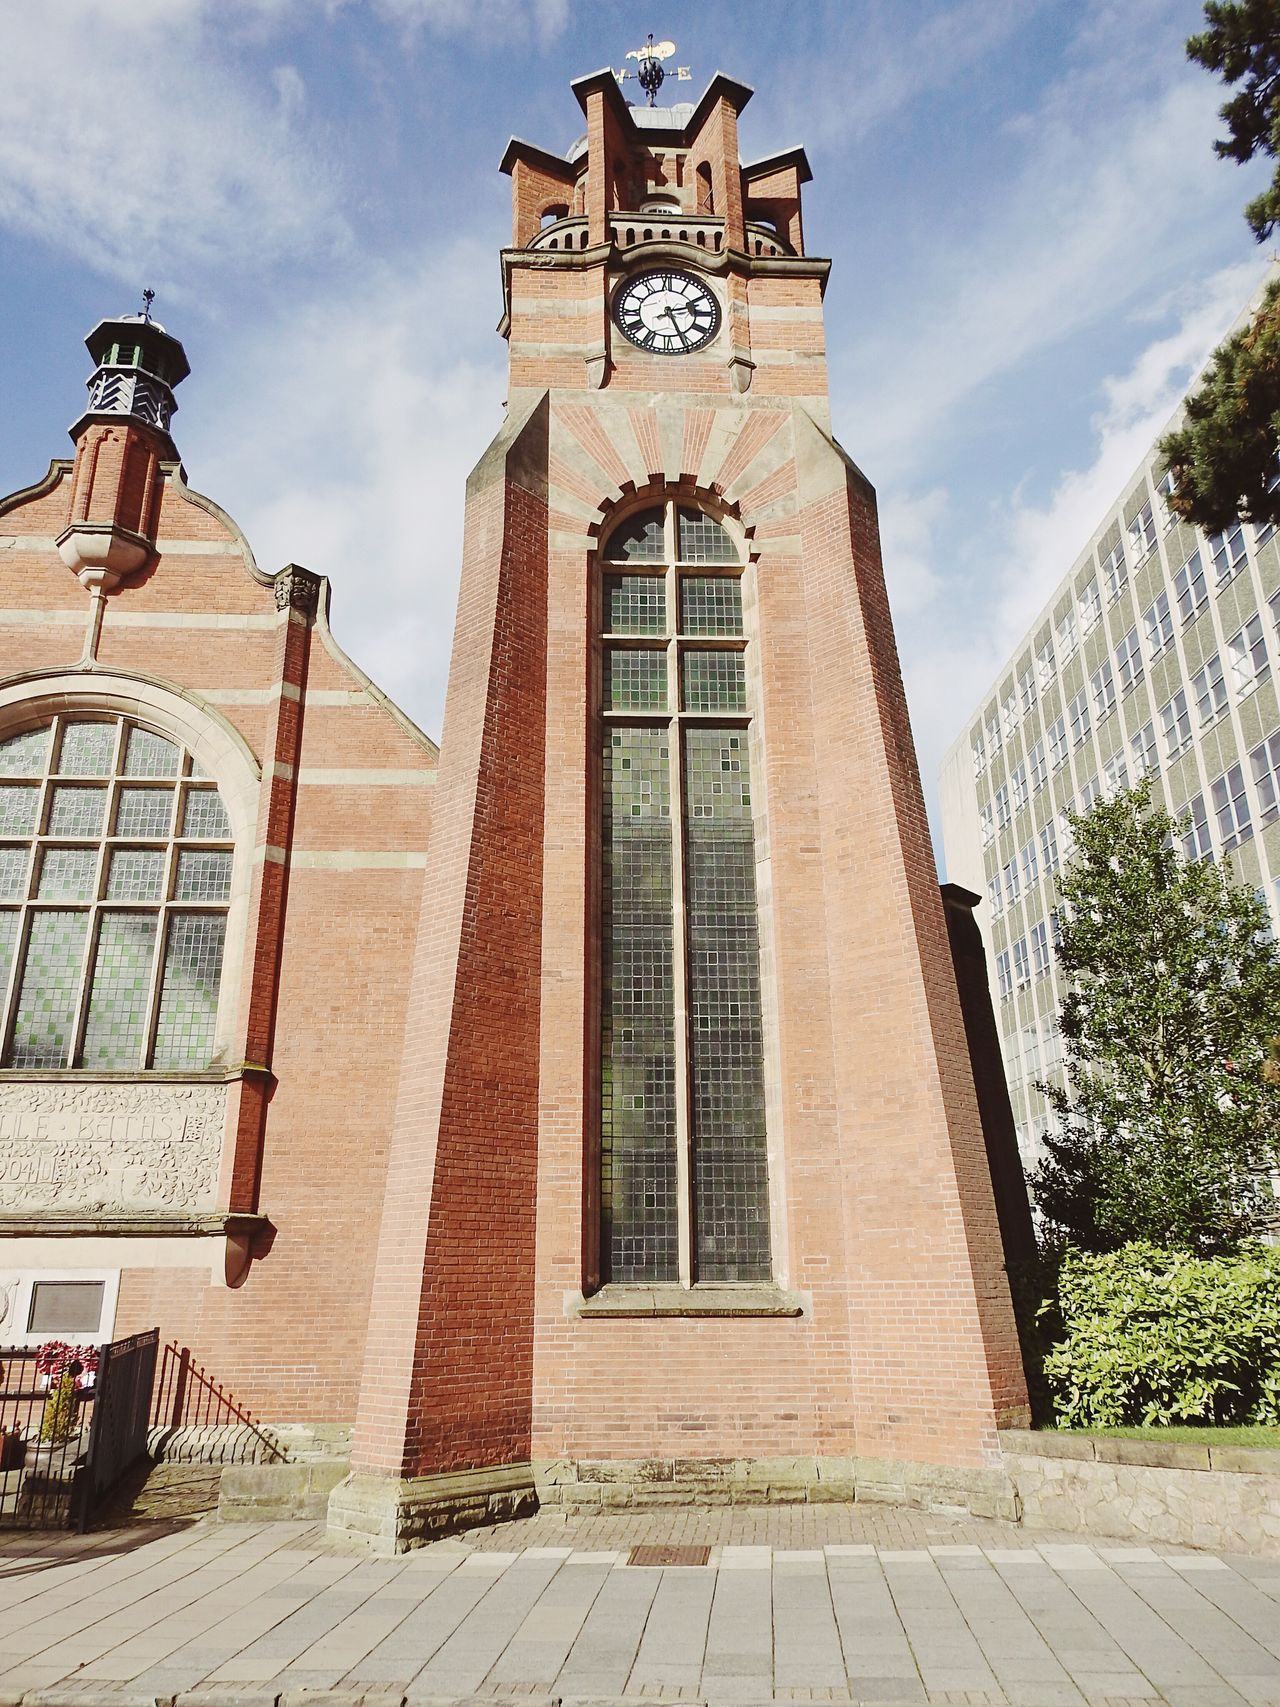 Architecture Clock Built Structure Low Angle View Building Exterior Time Day No People Outdoors Clock Tower Sky Clock Face Minute Hand